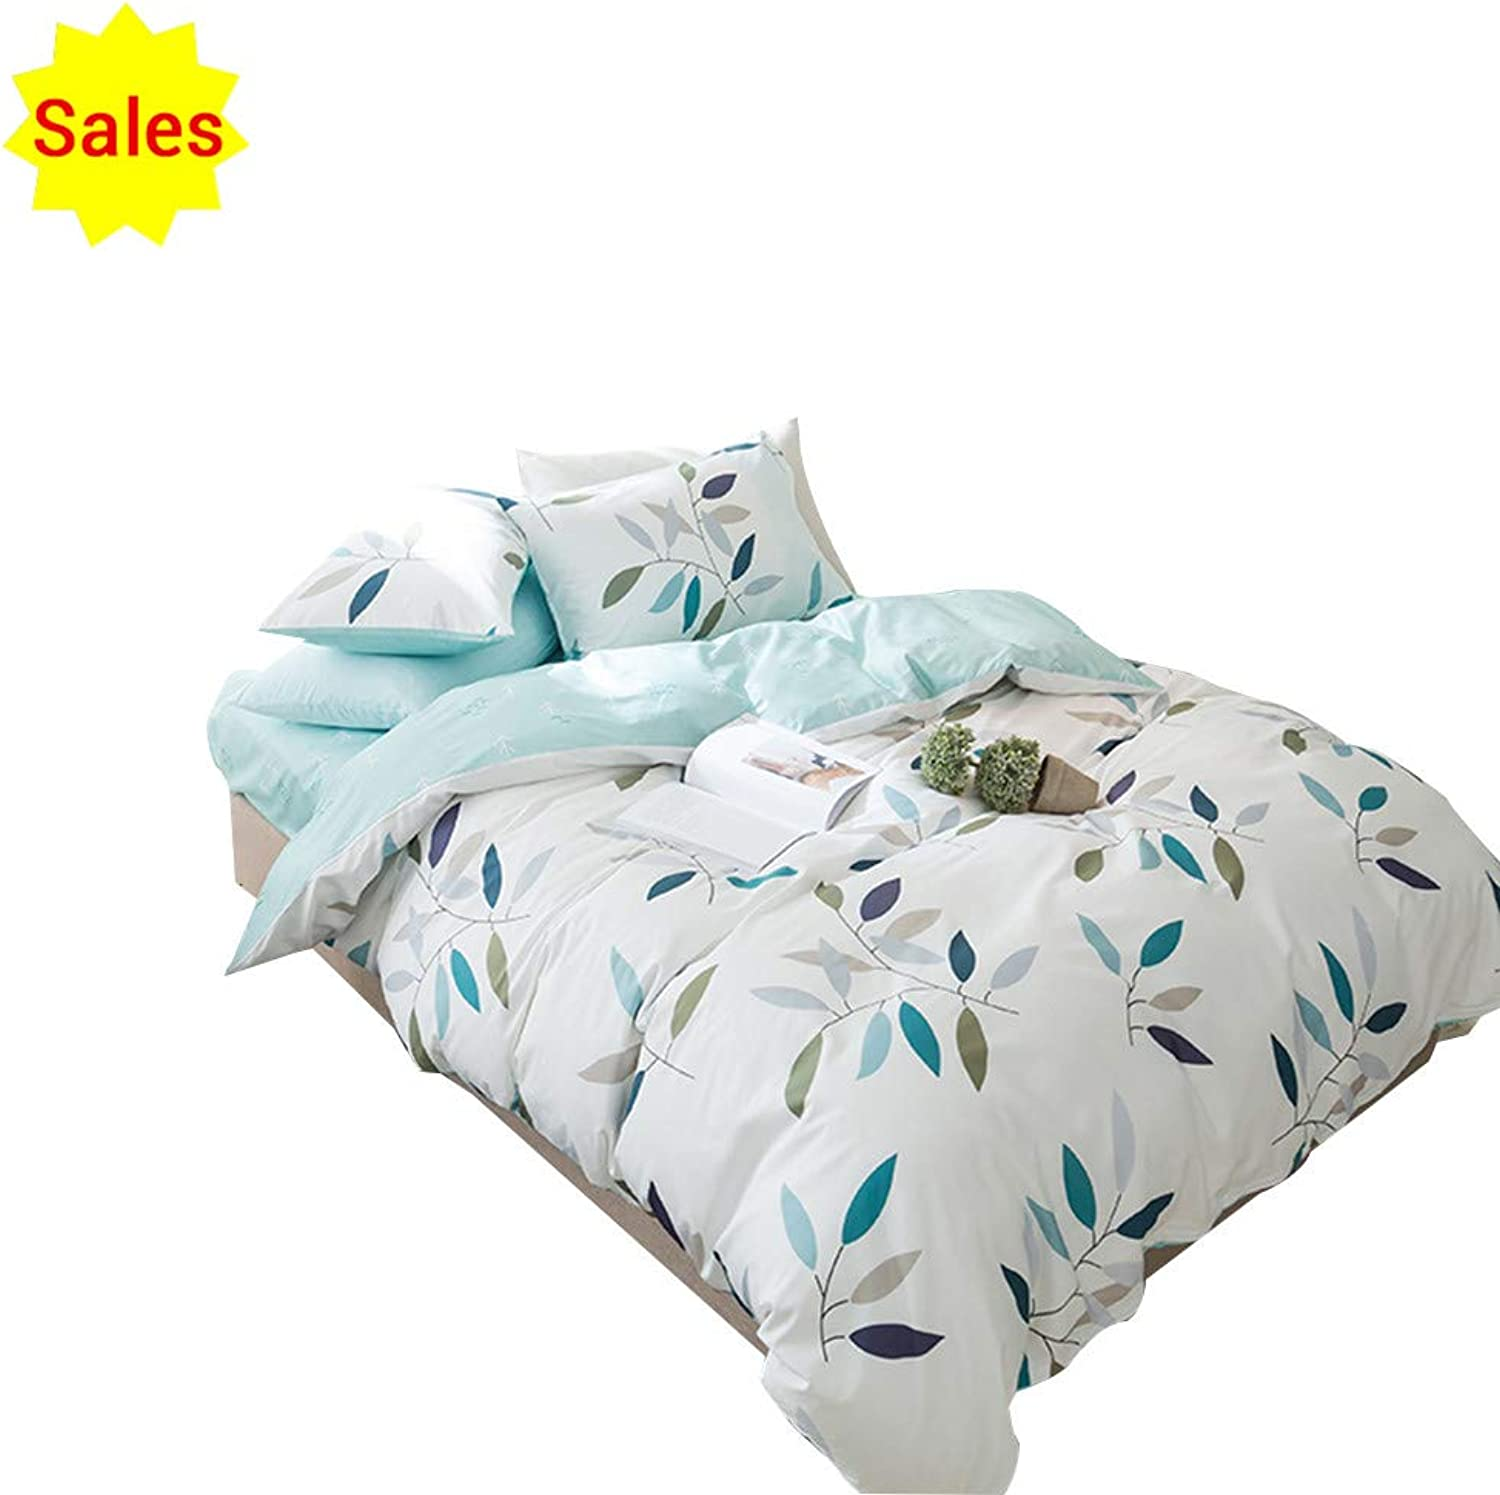 OTOB 3 Piece Duvet Cover Set Queen 2 Pillow Shams for Girls Woman - Hotel Quality 100% Cotton - Luxurious, Comfortable, Breathable, Soft and Extremely Durable, bluee White Leaves Pattern